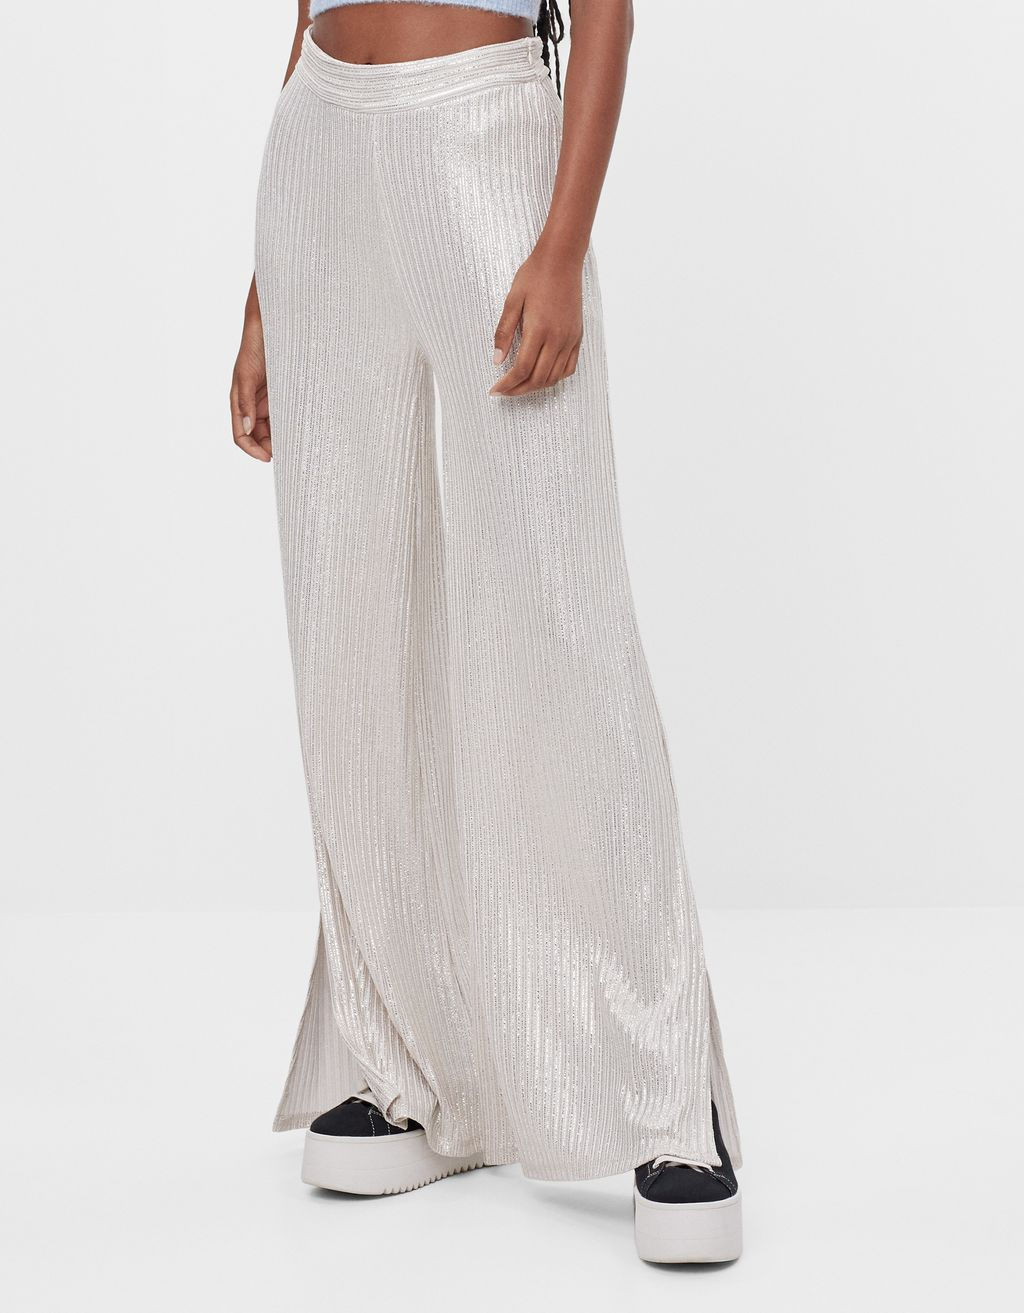 Flared trousers with metallic thread